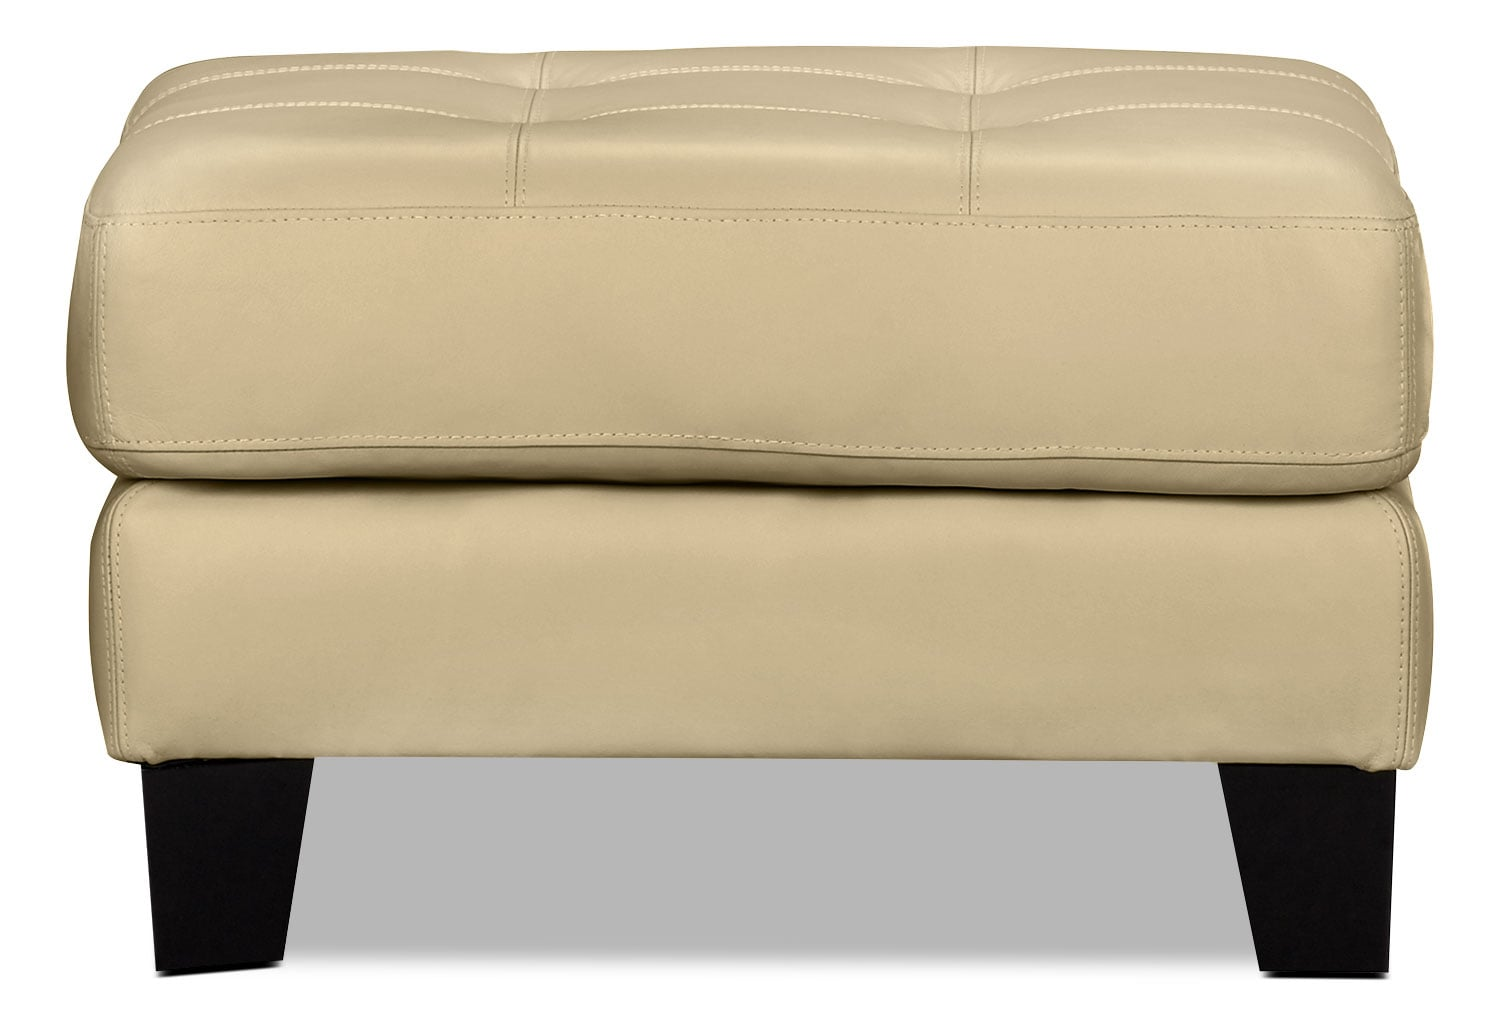 Living Room Furniture - Avenue Genuine Leather Ottoman - Ivory